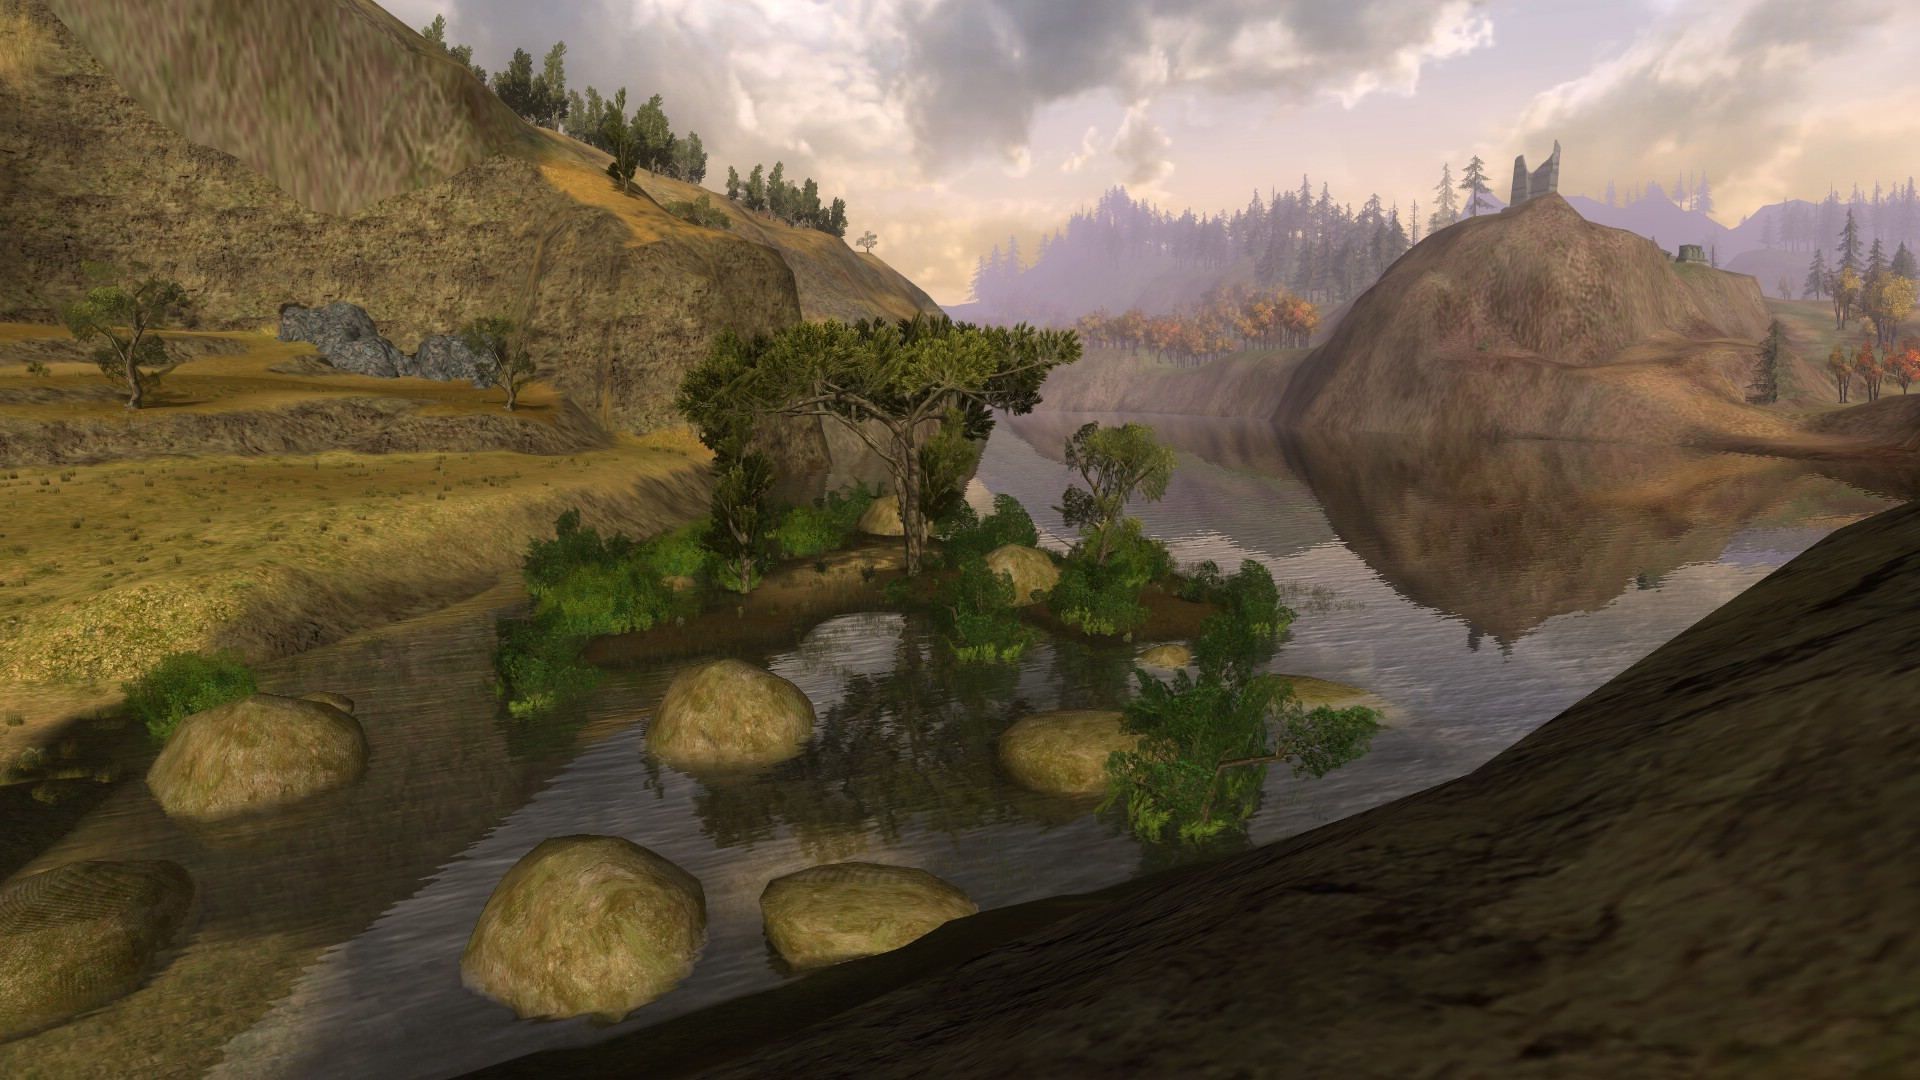 Lord of the Rings Online - Secluded Bay